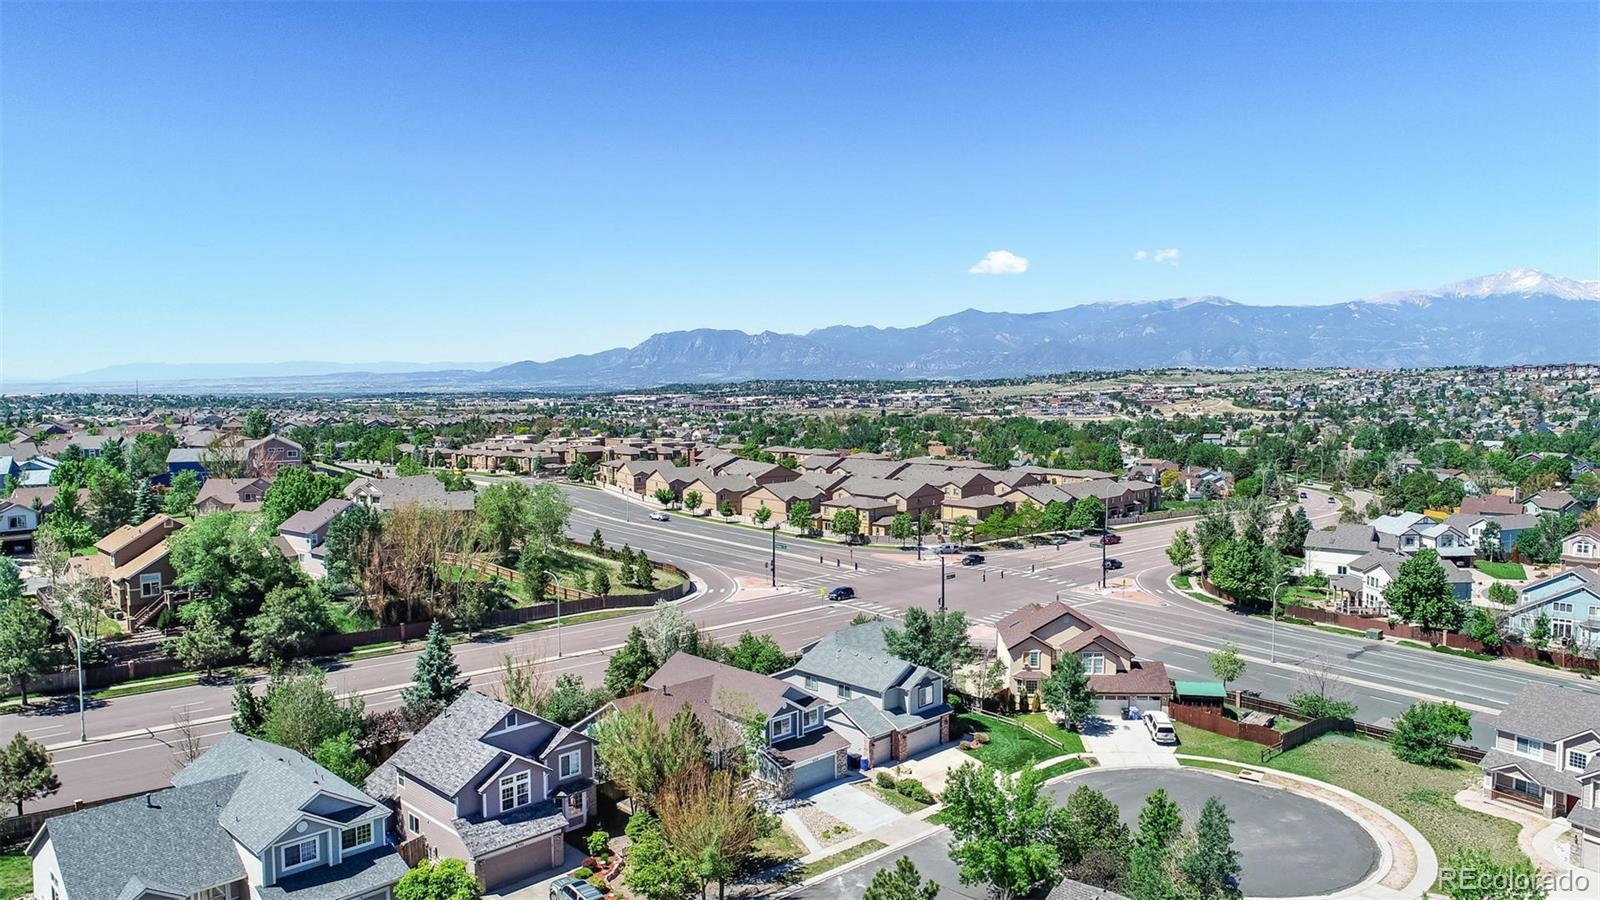 MLS# 1530283 - 3 - 6729 Stockwell Drive, Colorado Springs, CO 80922